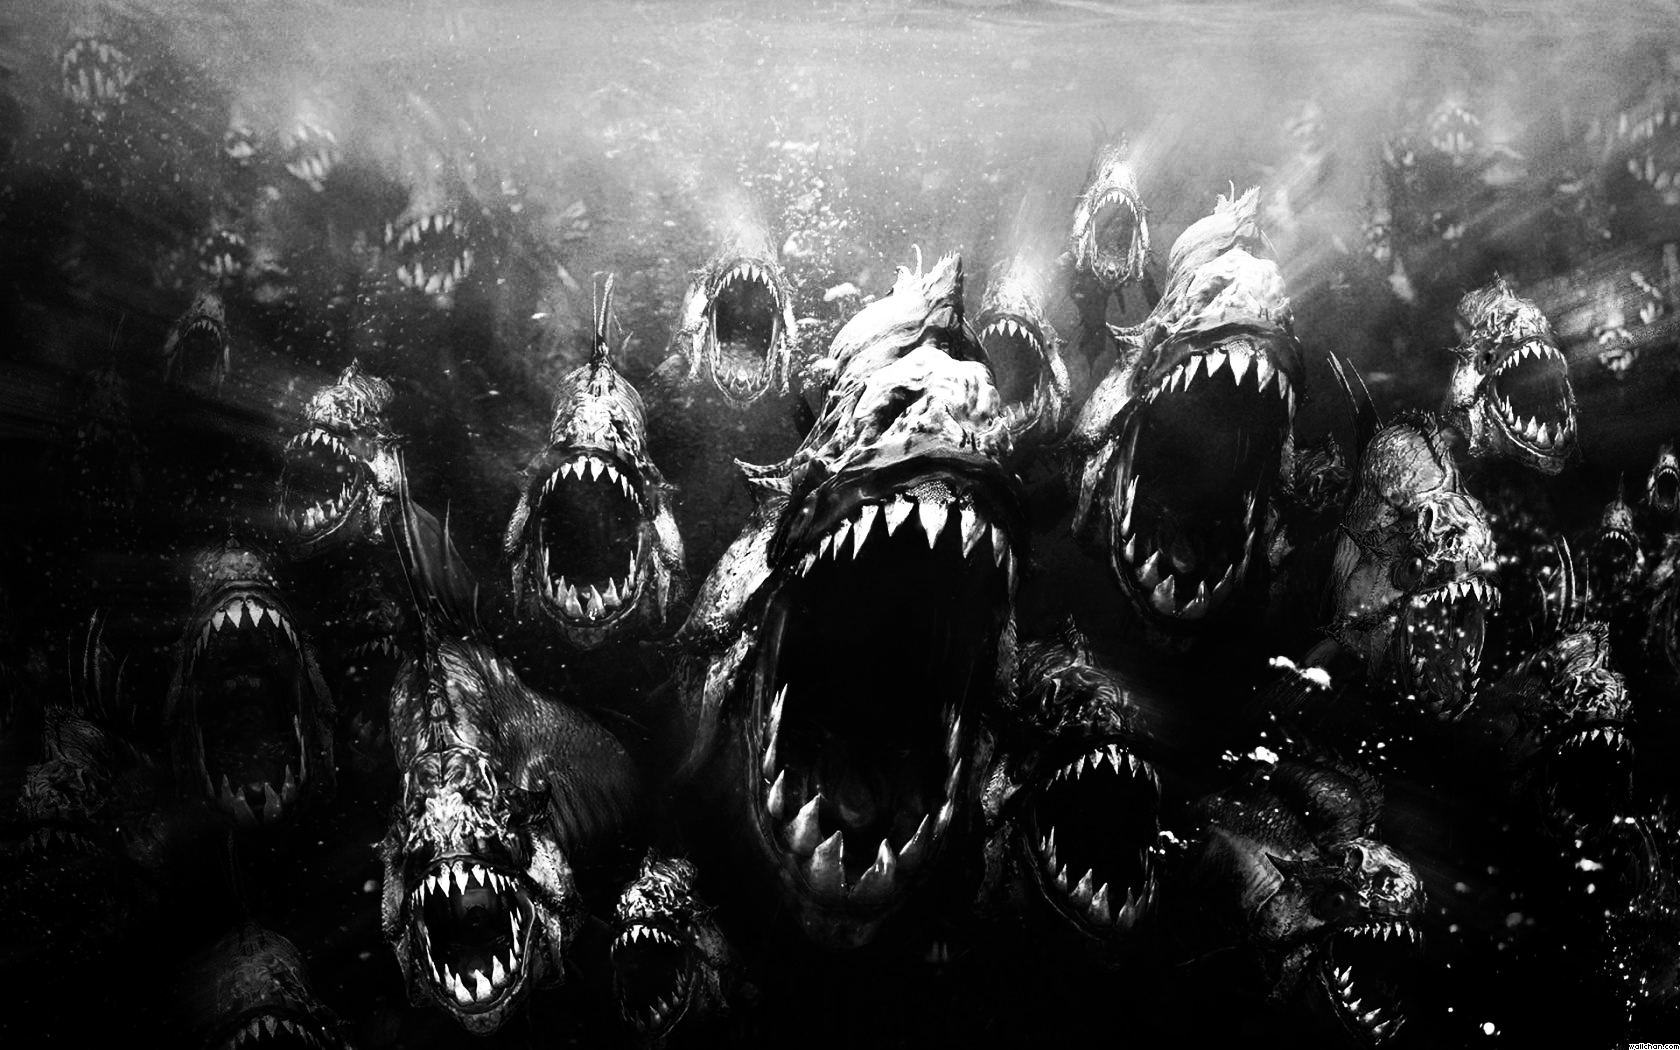 scary-piranha-piranhas-swarm-wallpaper.jpg